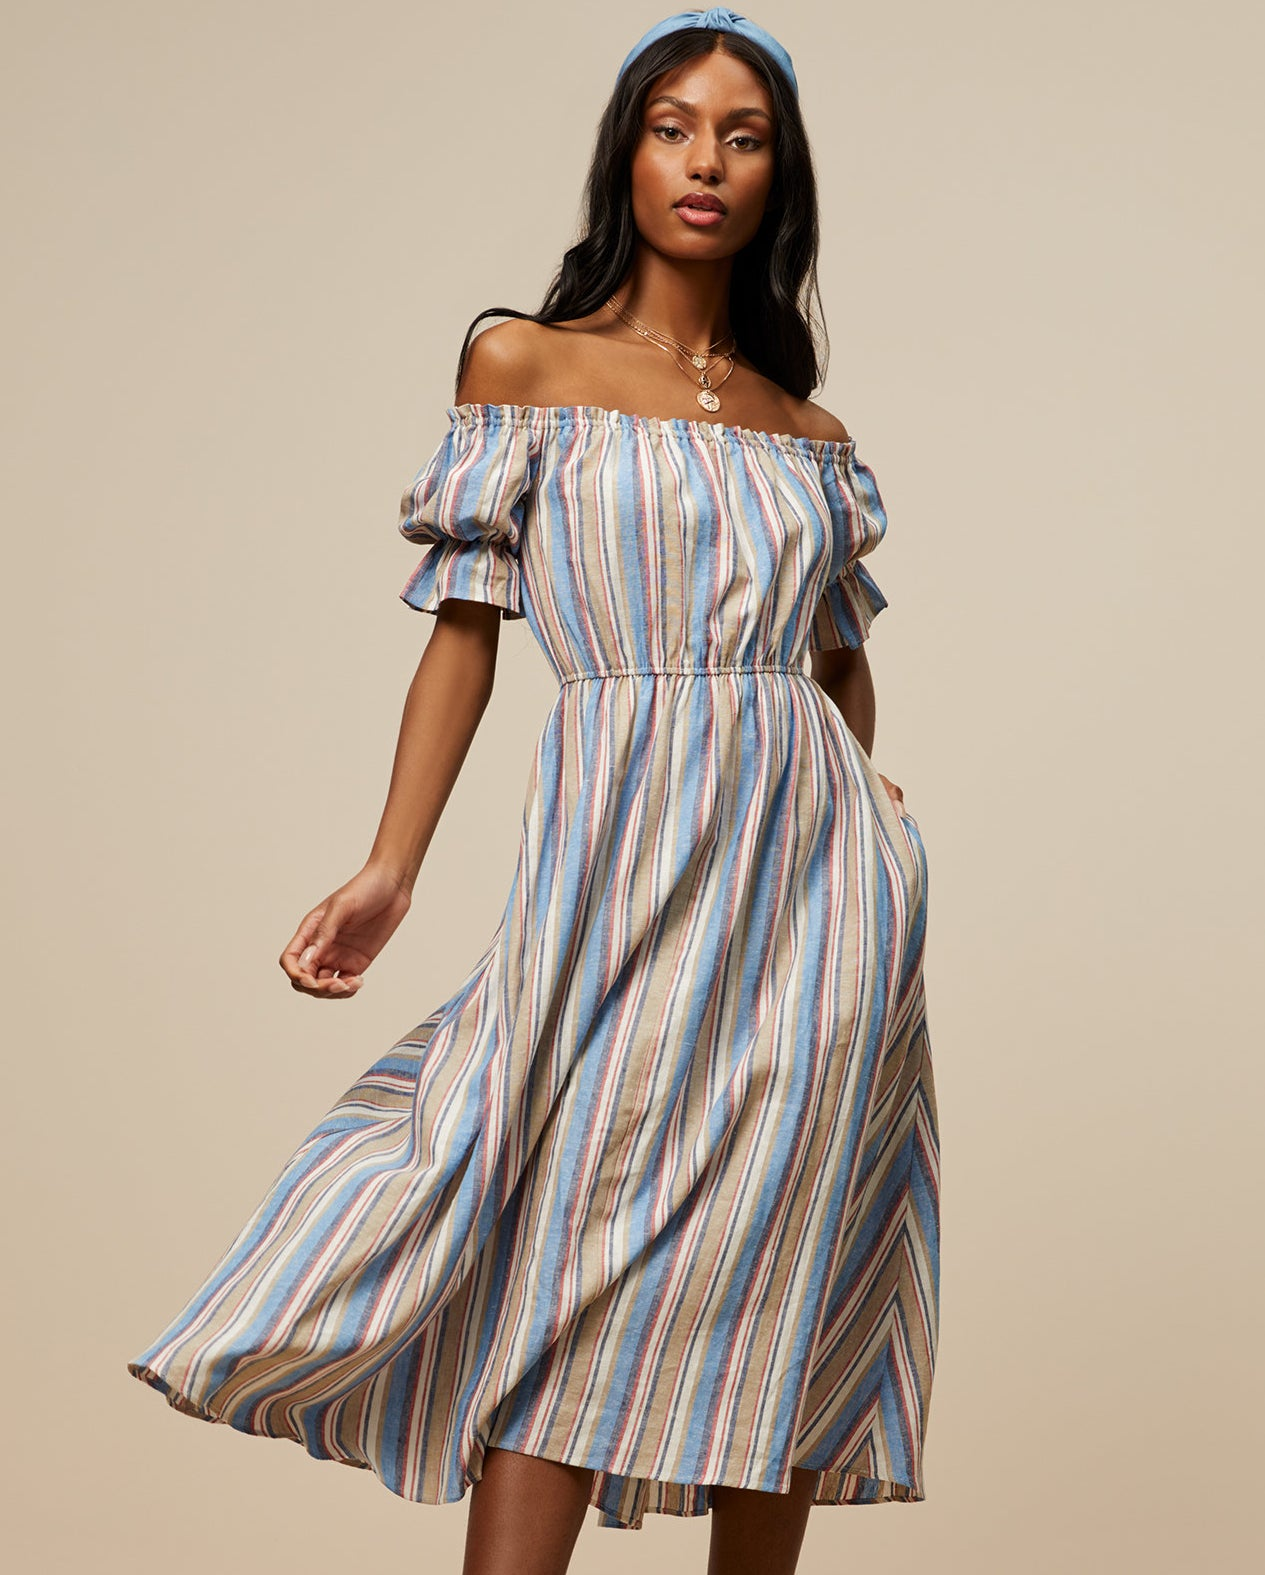 Model wearing the striped dress